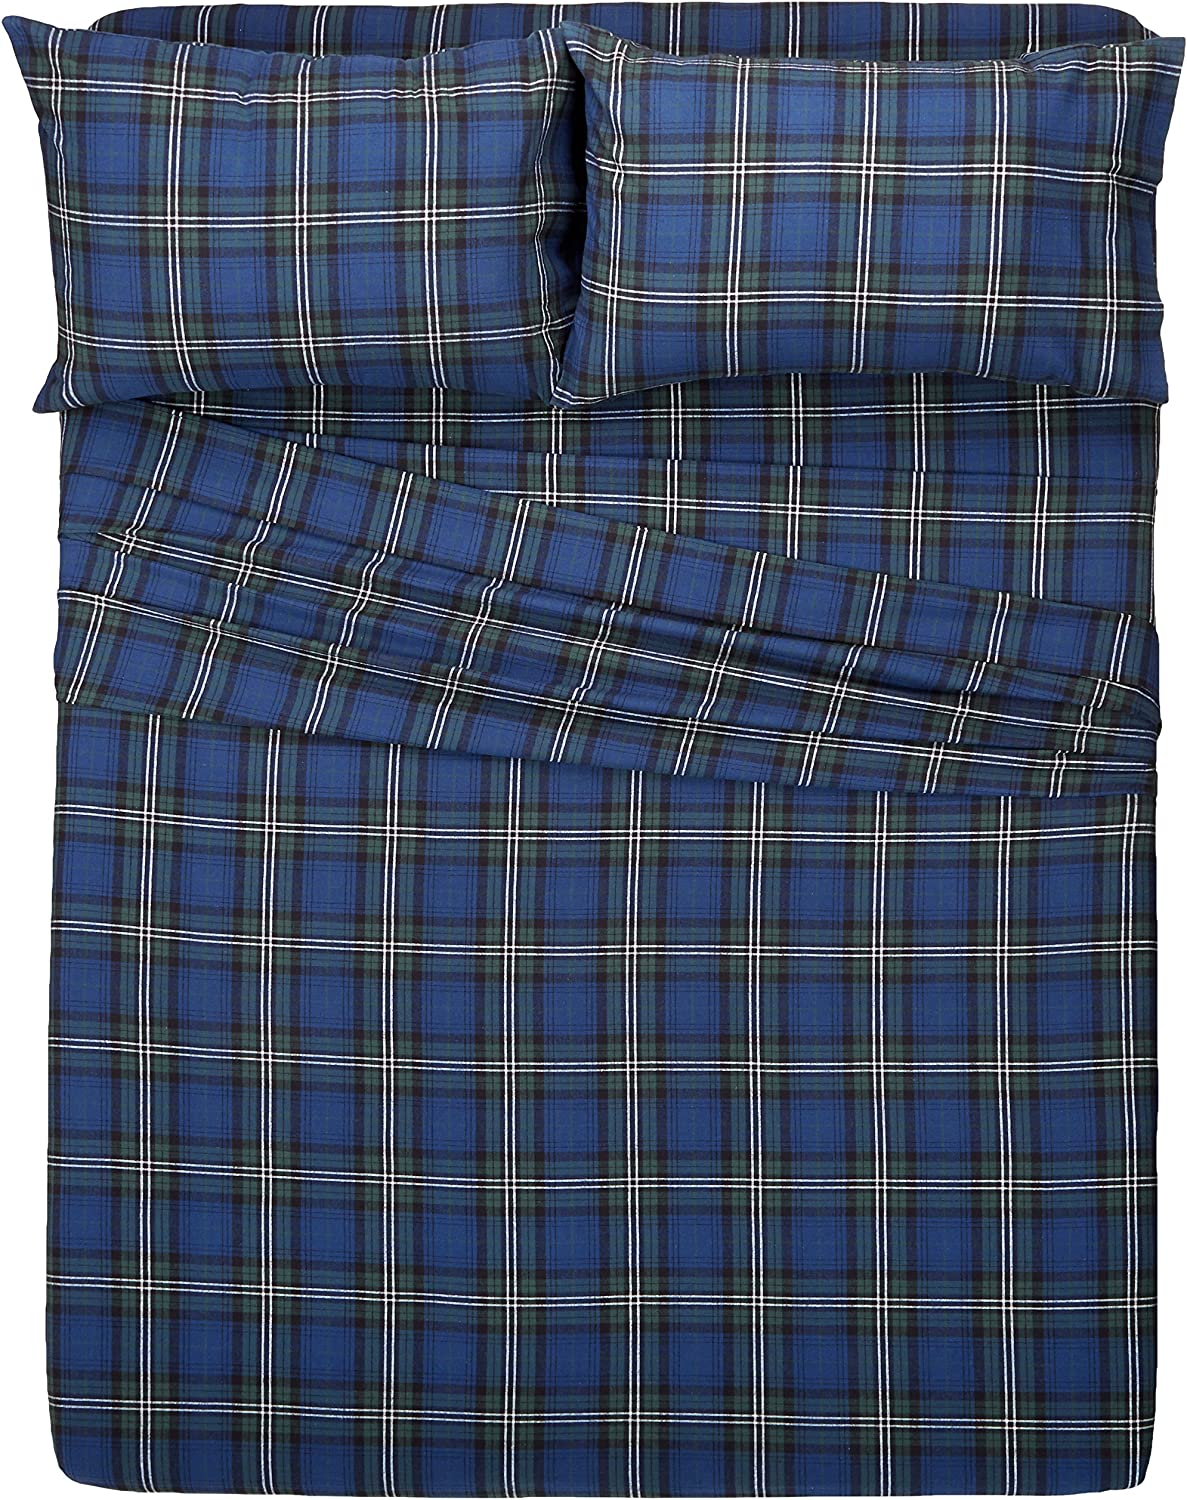 Slumber Peacefully with the Best Flannel Sheets